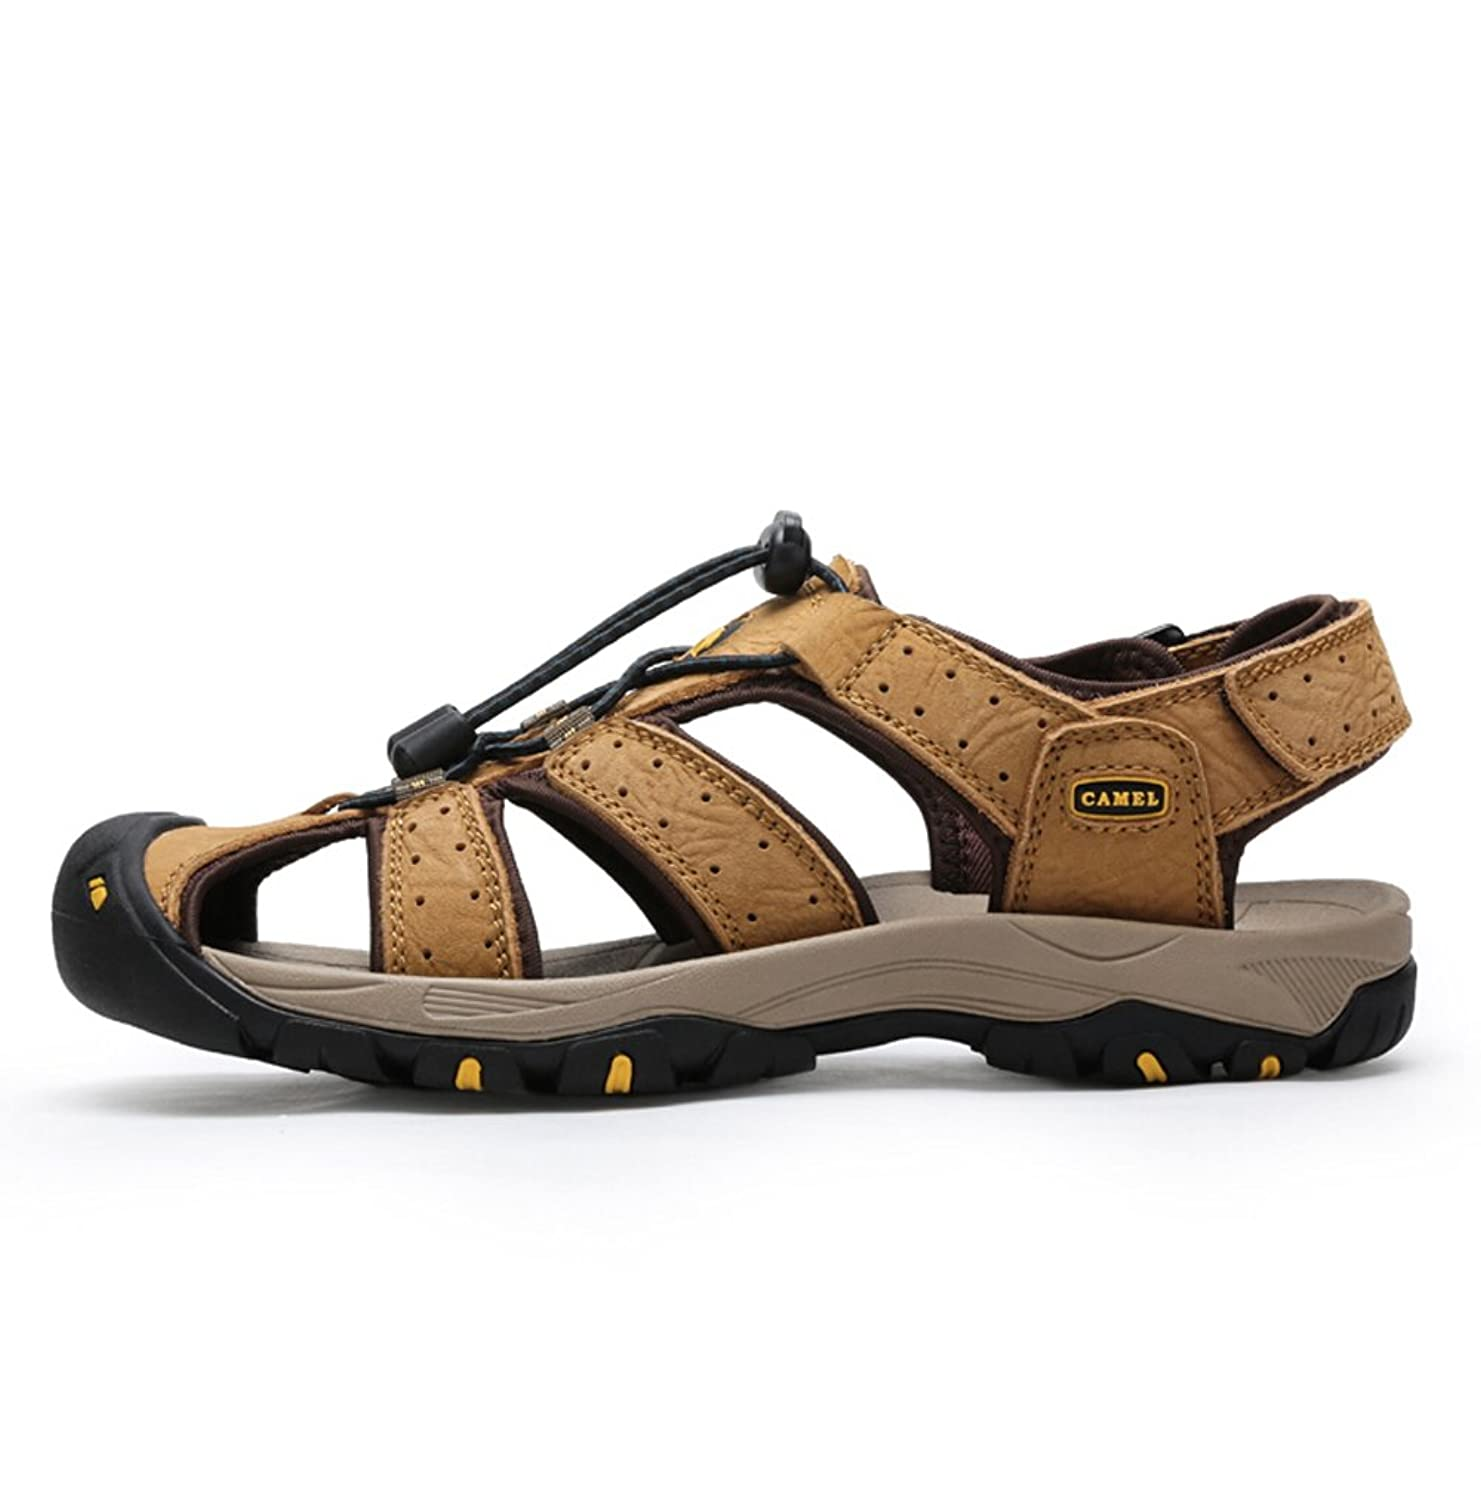 Women's RV Performance Protected Closed Toe Drift River Sandals